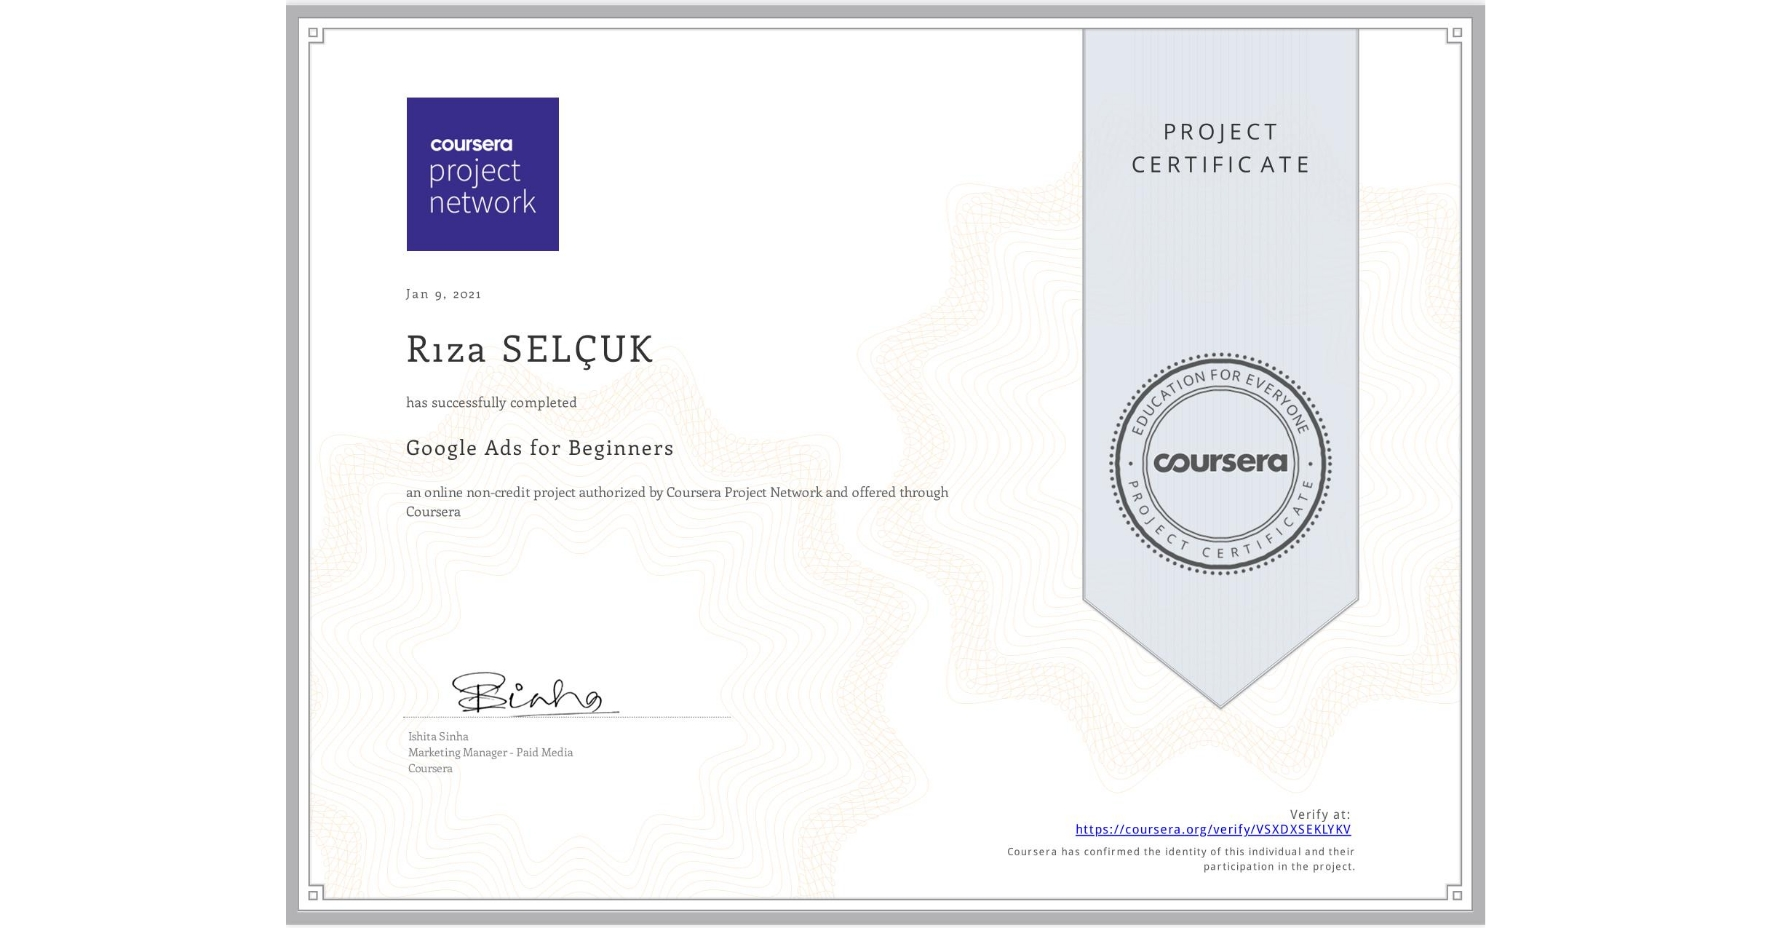 View certificate for Rıza SELÇUK, Google Ads for Beginners, an online non-credit course authorized by Coursera Project Network and offered through Coursera